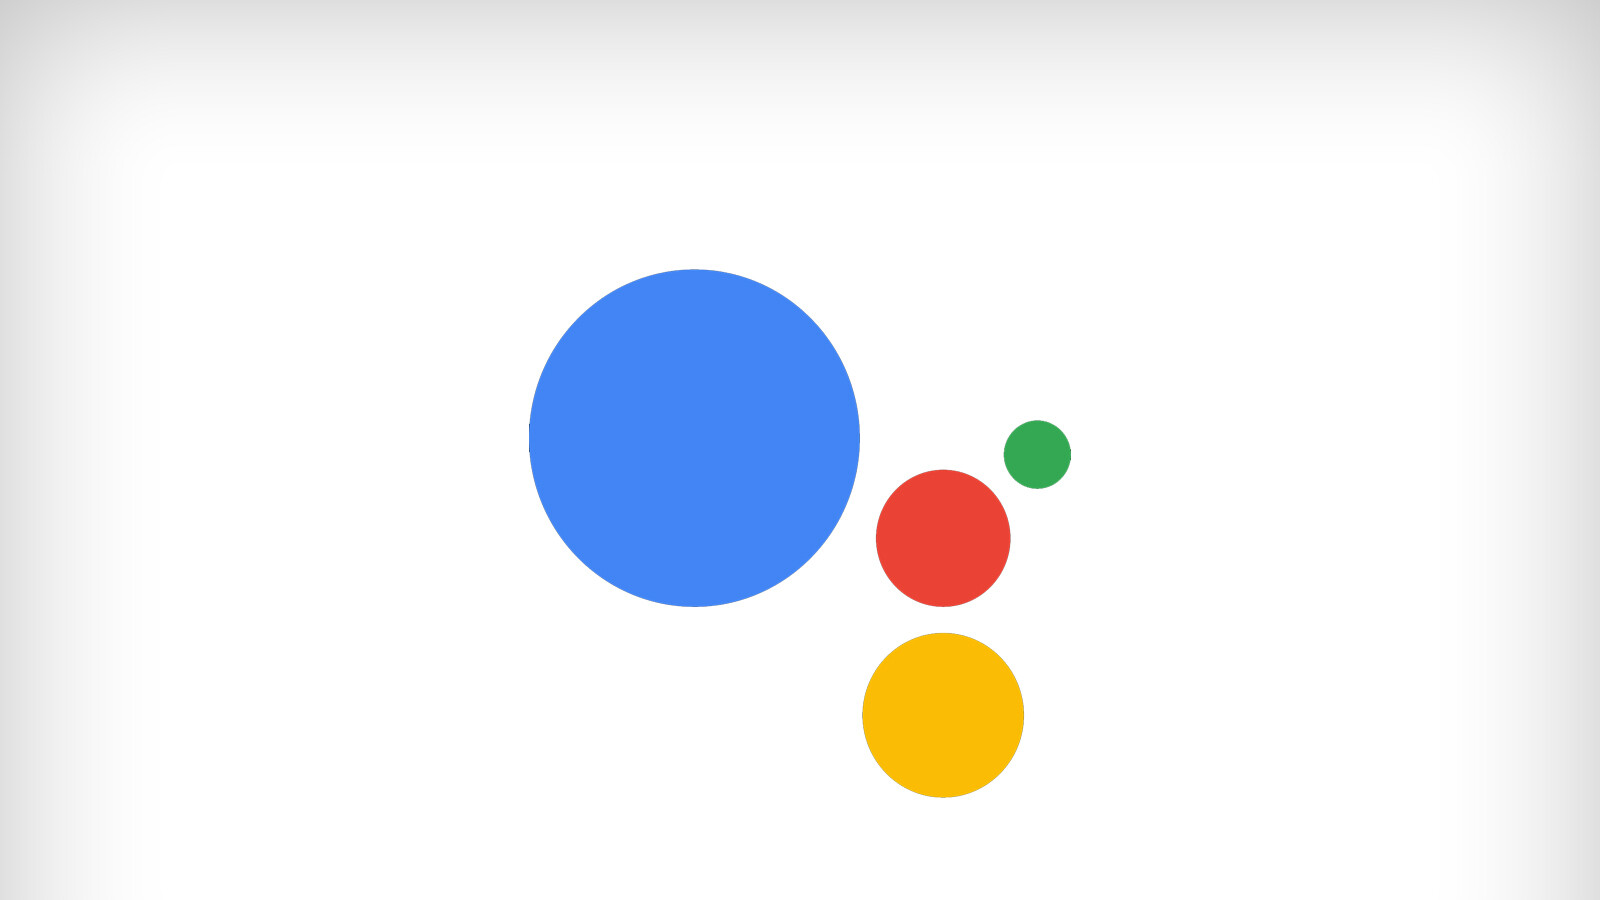 885c4868fa3 Google is today opening Assistant to developers in a way that will allow  them to integrate in-app purchases and subscription plans with their  products.